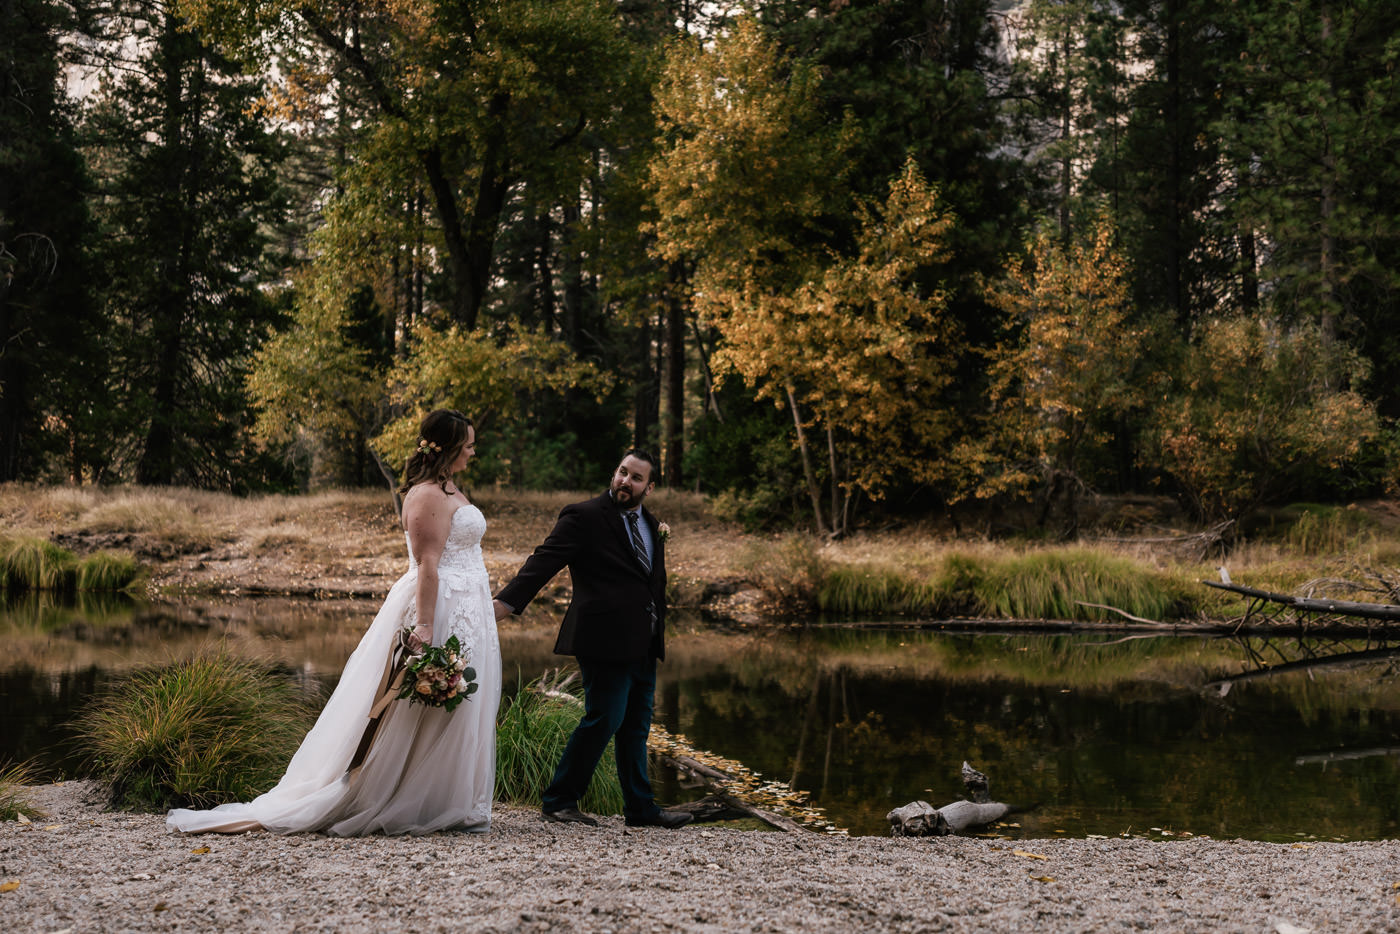 cathedral-beach-elopement-ceremony-yosemite-23.jpg